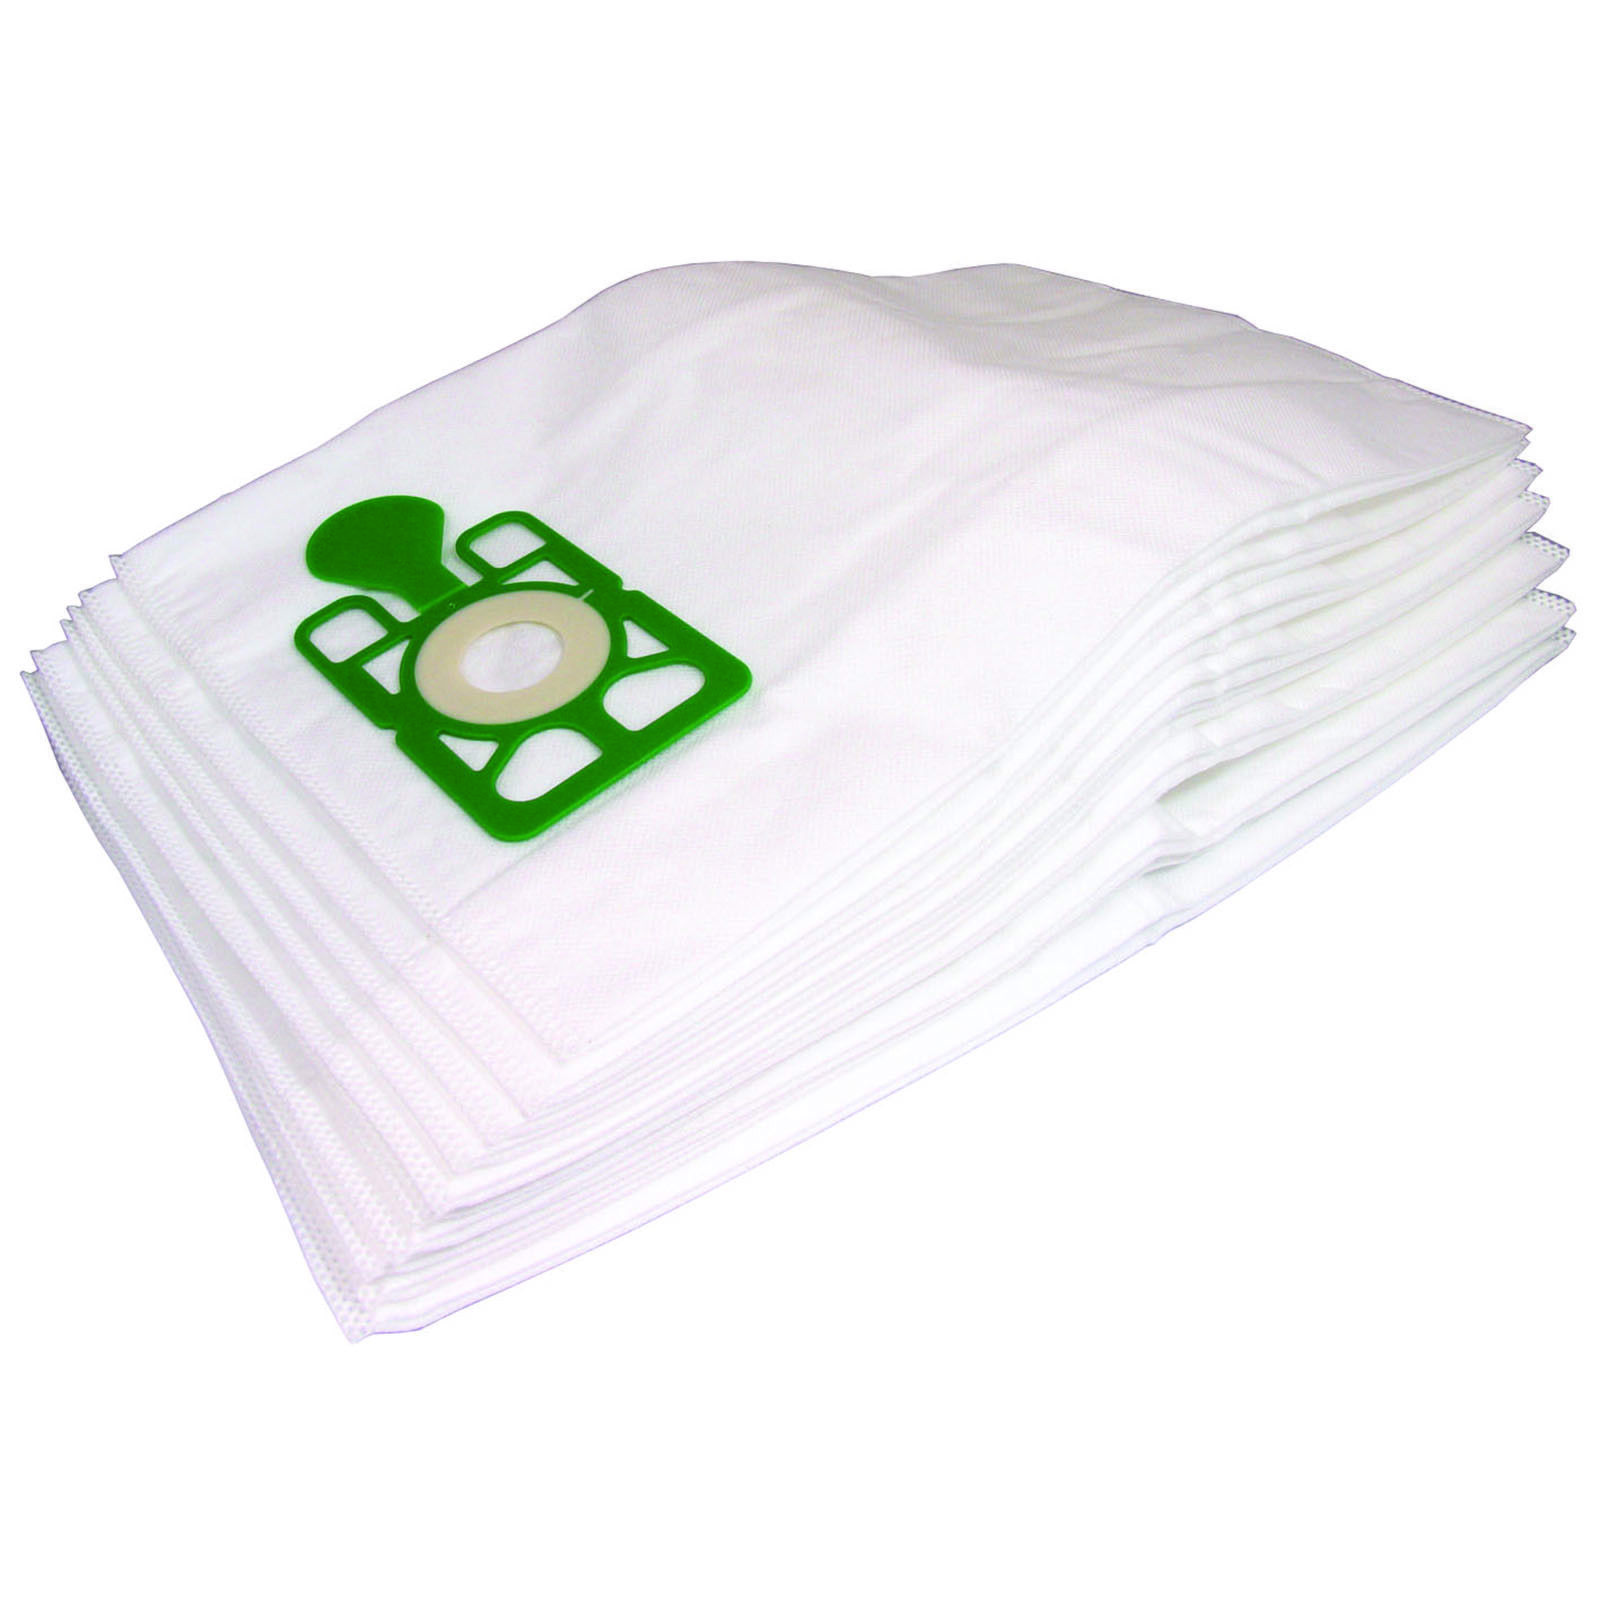 10 x Numatic EDWARD EVR370 Microfibre Vacuum Cleaner Dust Bags